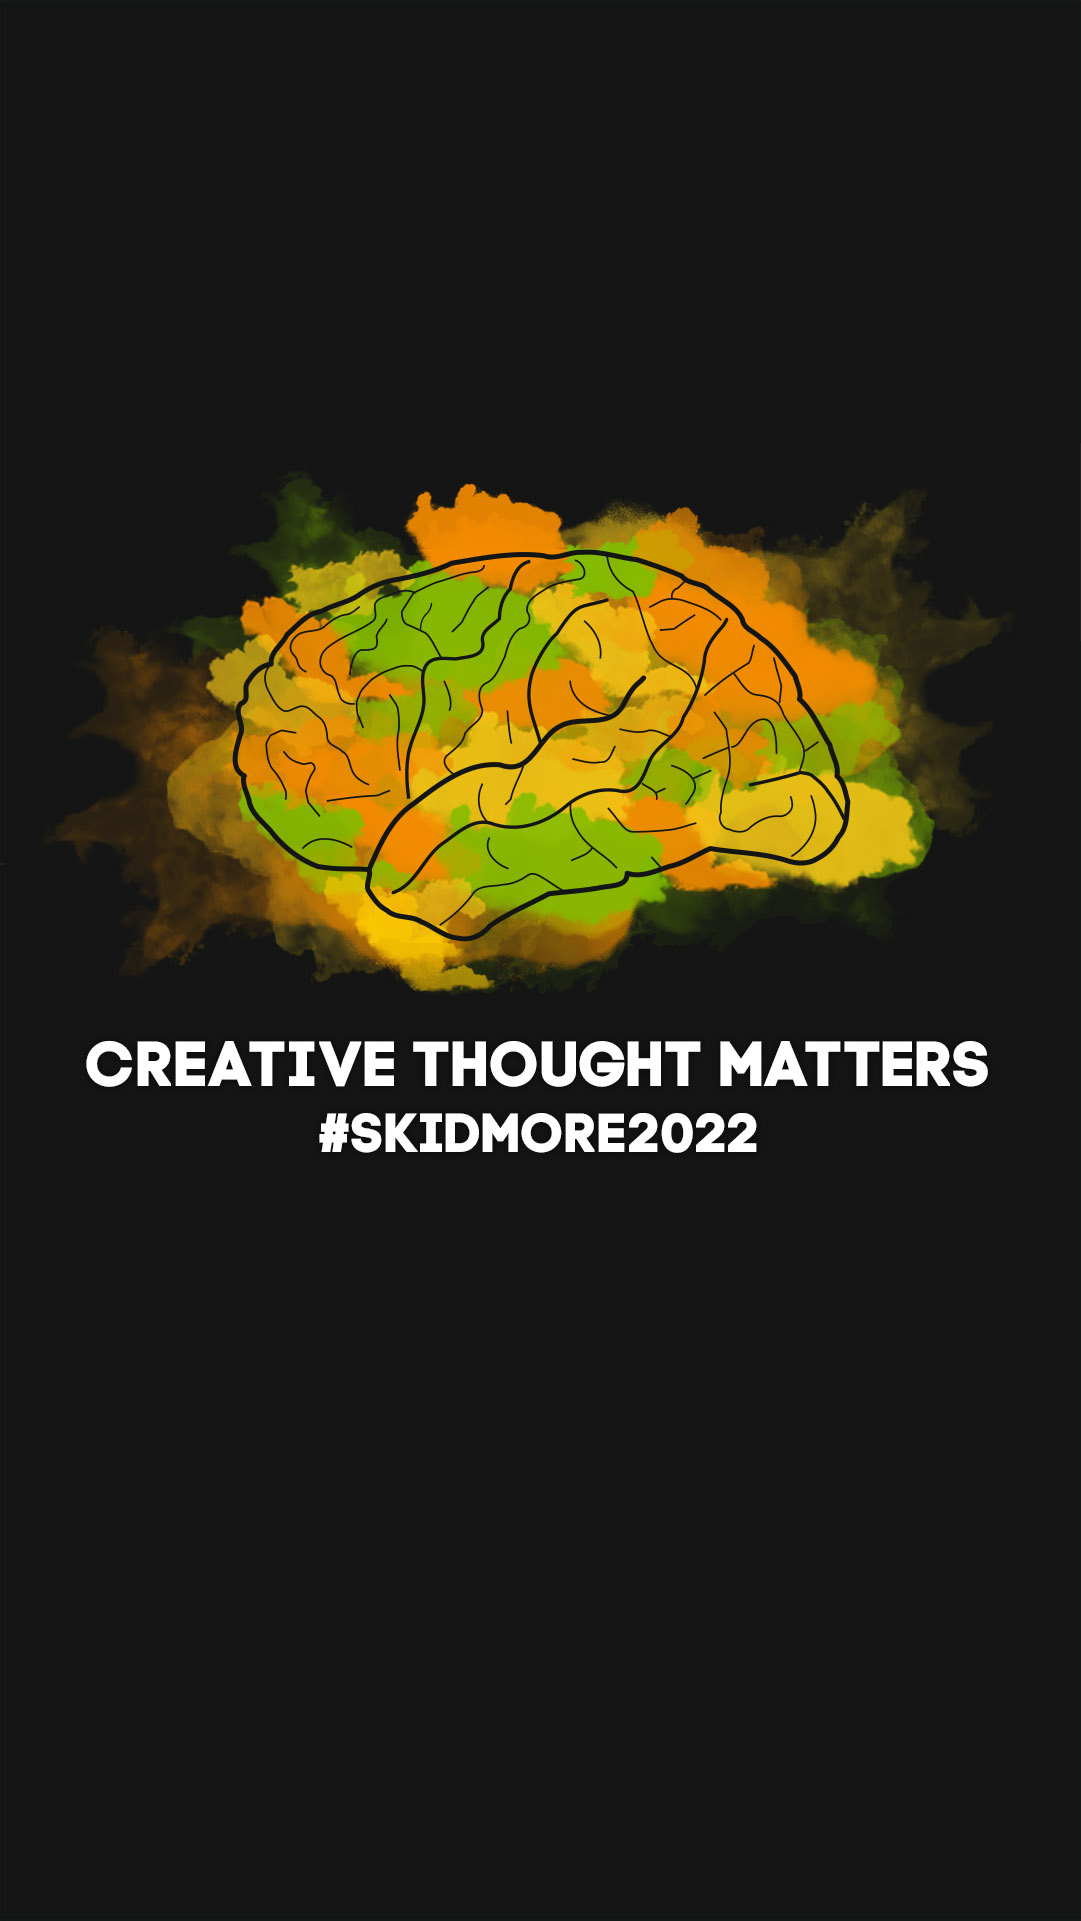 Creative Thought Matters Phone Background